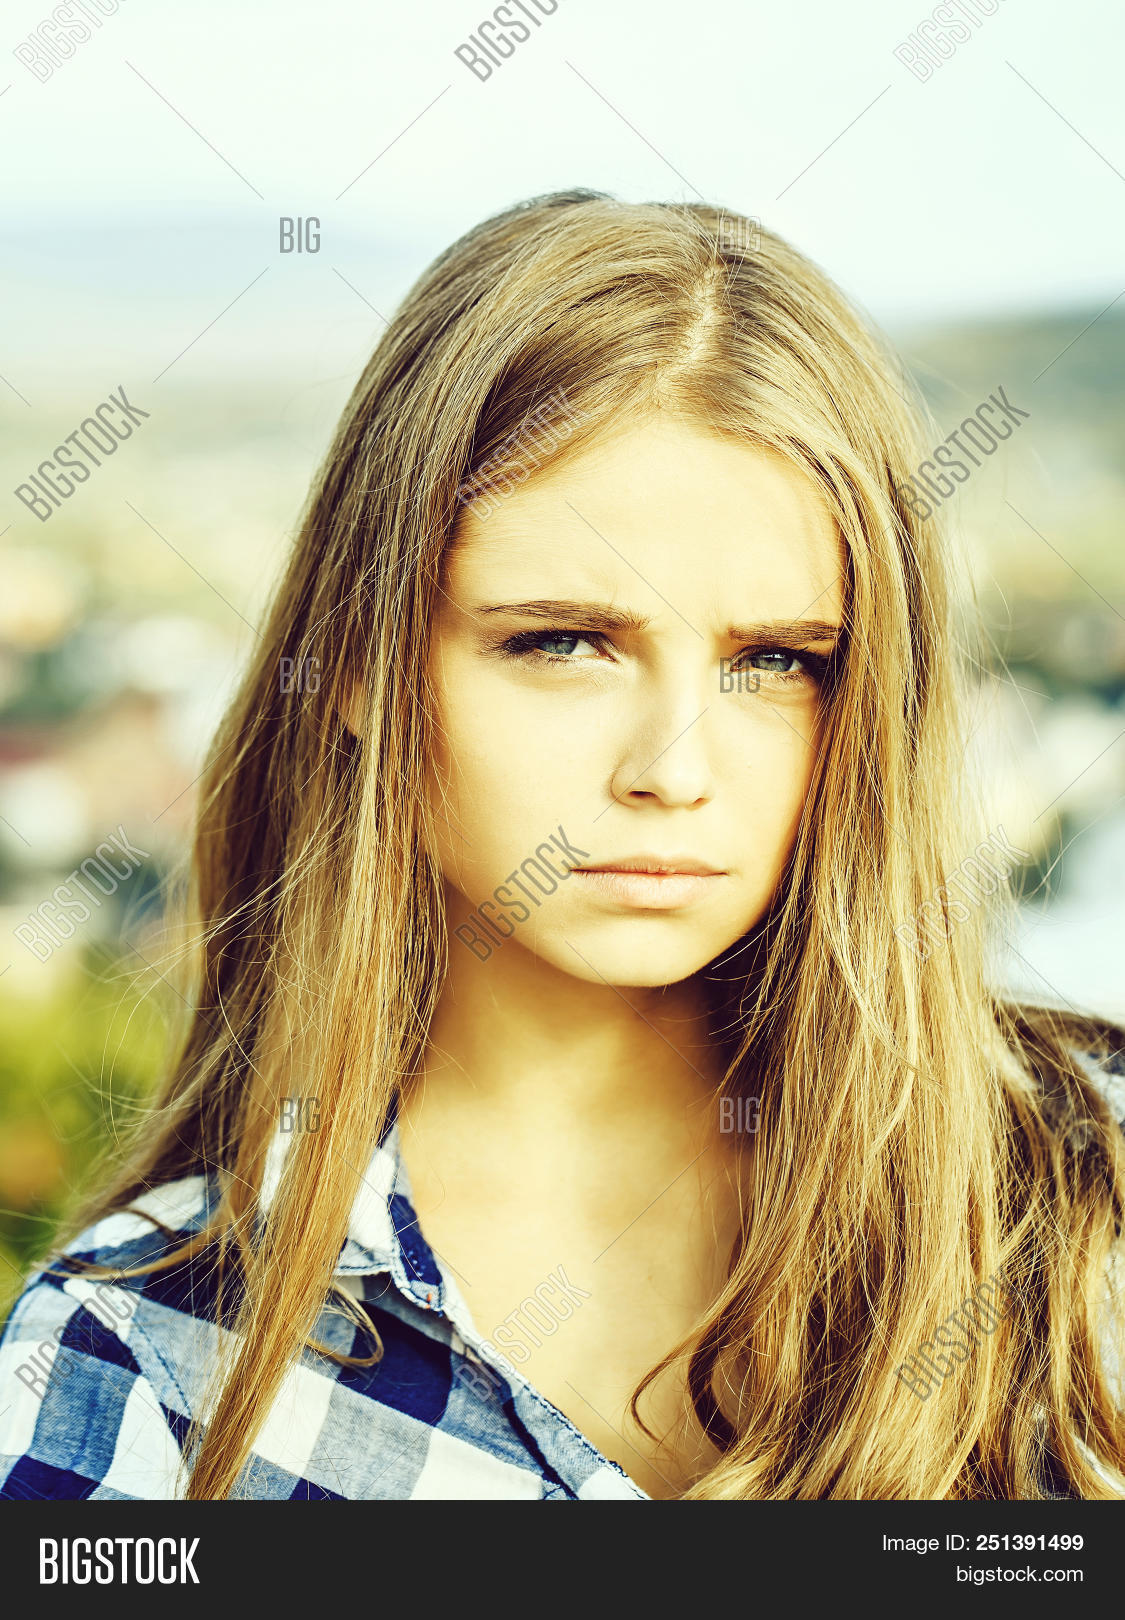 Pretty Girl Young Image Photo Free Trial Bigstock